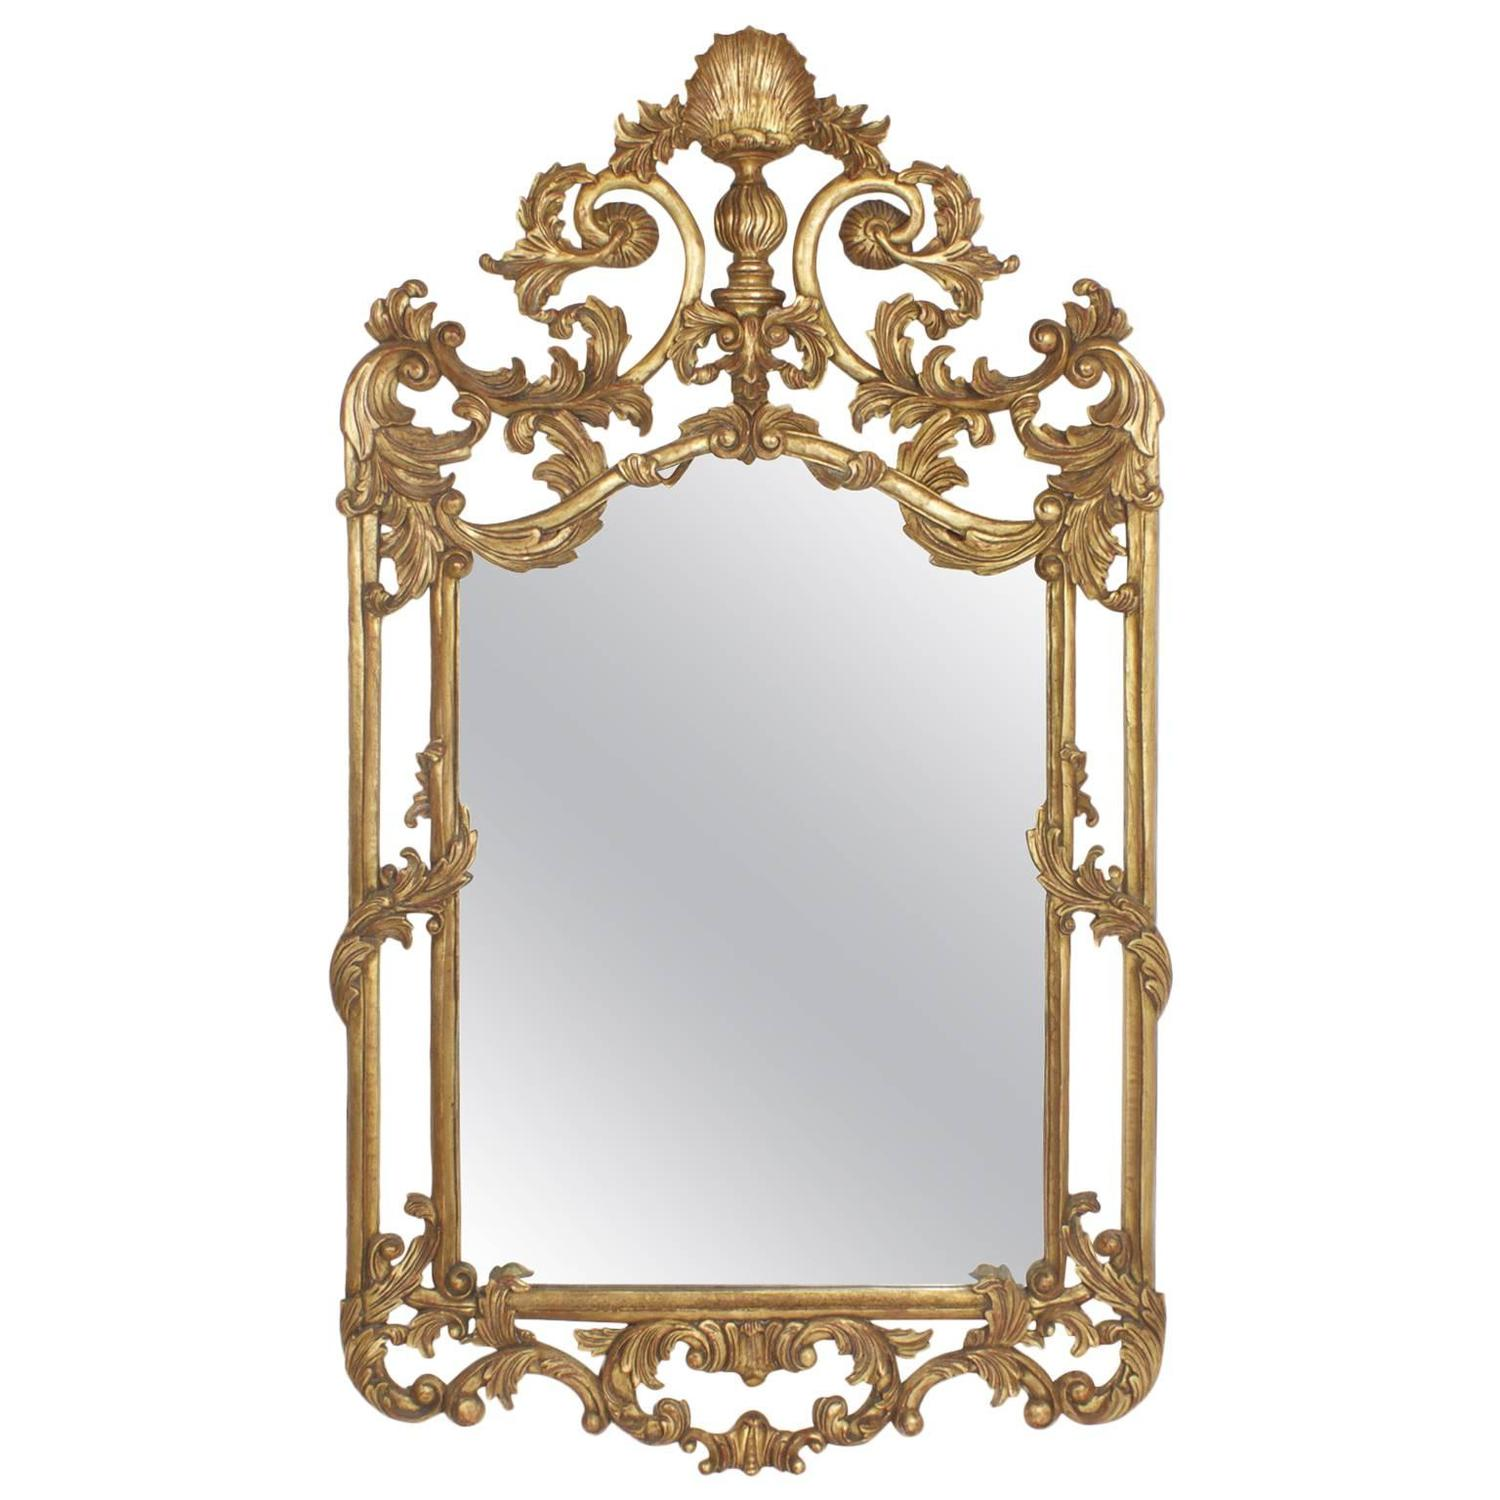 Fancy gilt italian mirror at 1stdibs for Fancy mirror